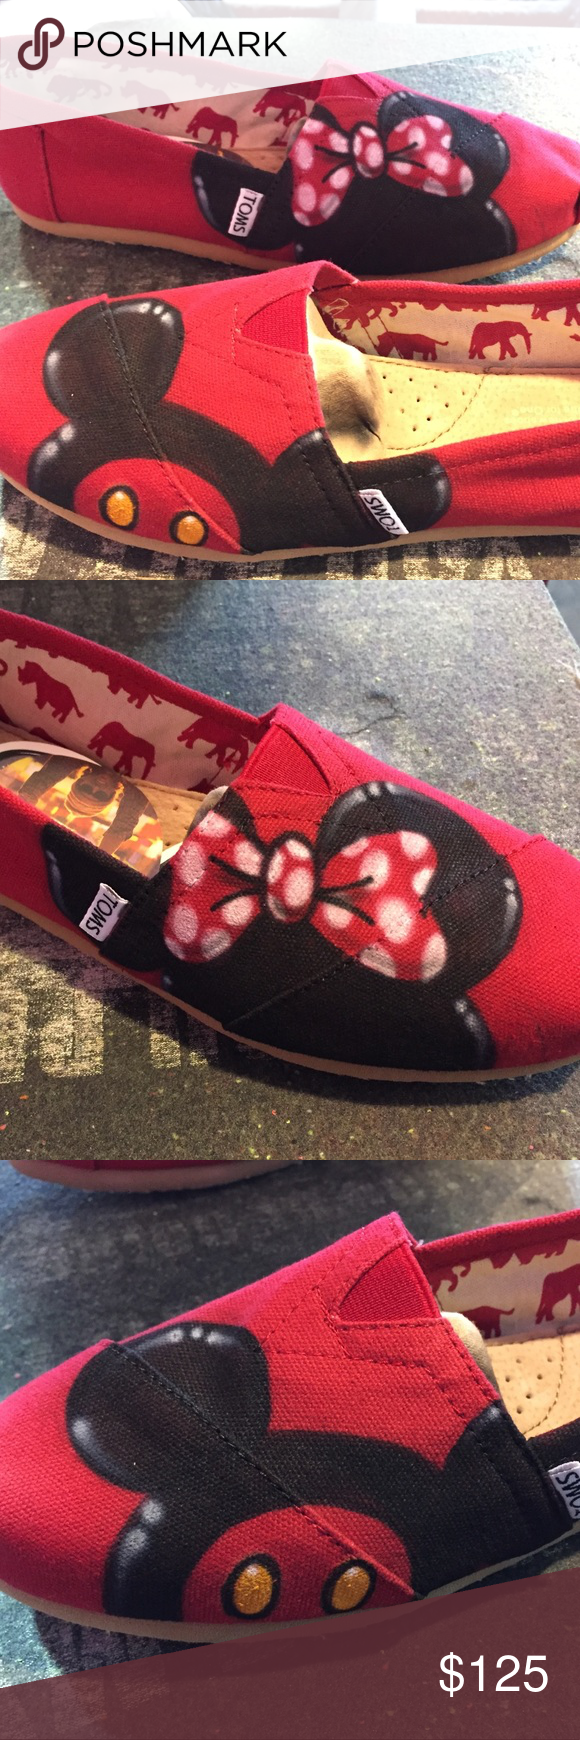 f85df1a21b0 Custom Airbrush Disney Toms Mickey Minnie Mouse Custom made Disney Toms.  New with tags. Any size available. Allow 5 days to ship. Toms Shoes Sneakers